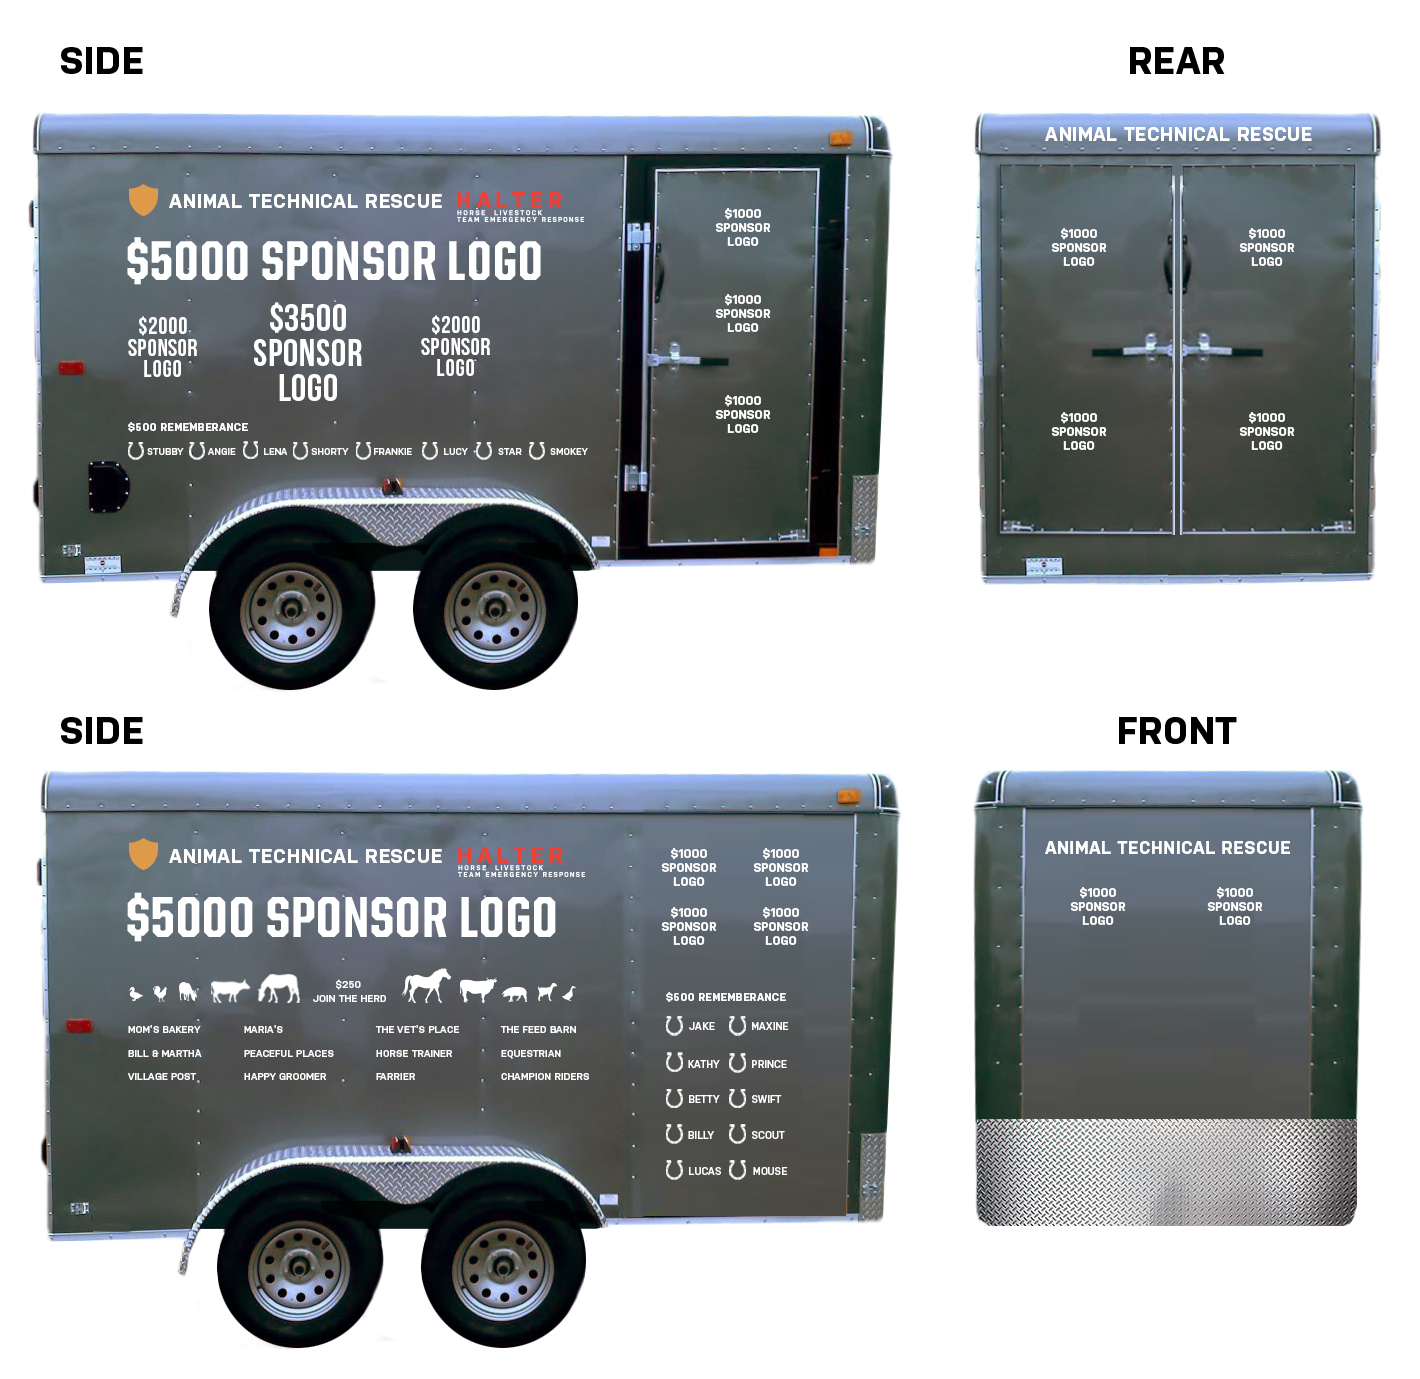 Photos Showing Sponsorship Logo Placement on Trailer Image